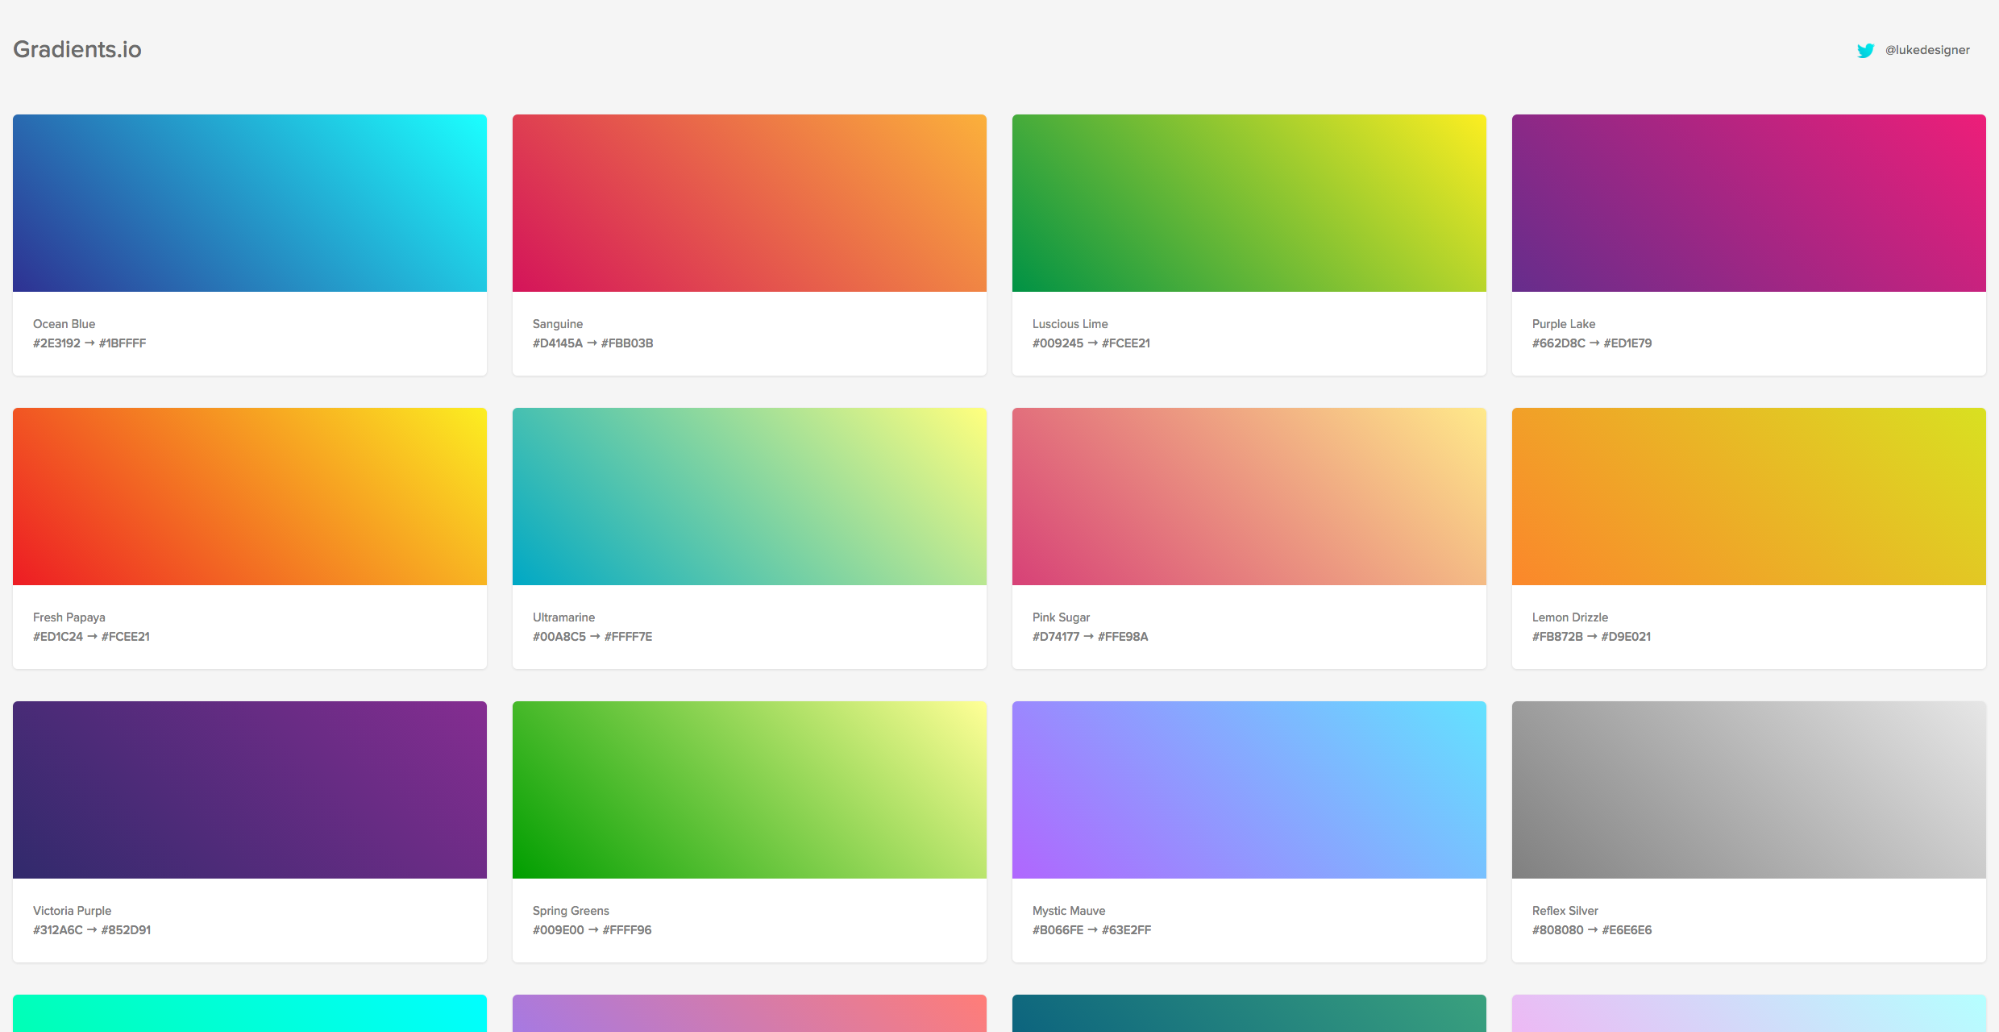 Gradients.io curates cool gradients for you to use in your websites.